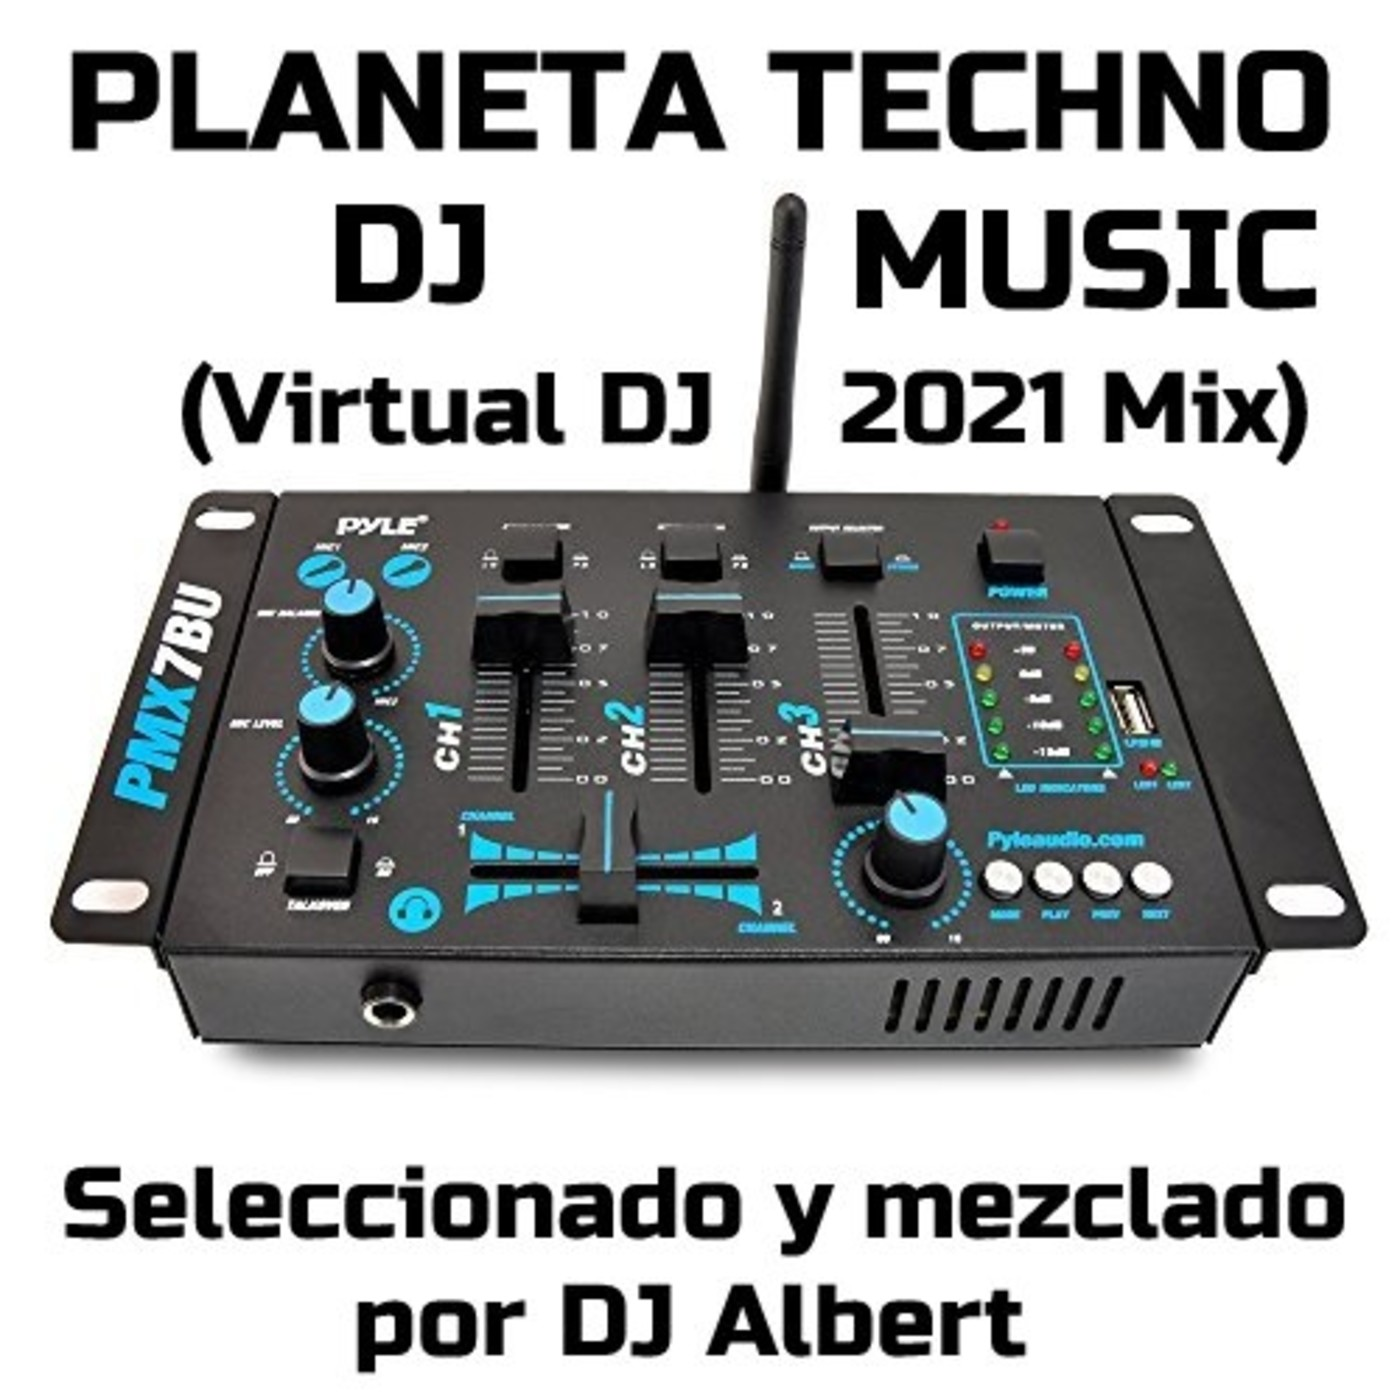 PLANETA TECHNO DJ MUSIC (Virtual DJ 2021 Mix) Seleccionado y mezclado por DJ Albert